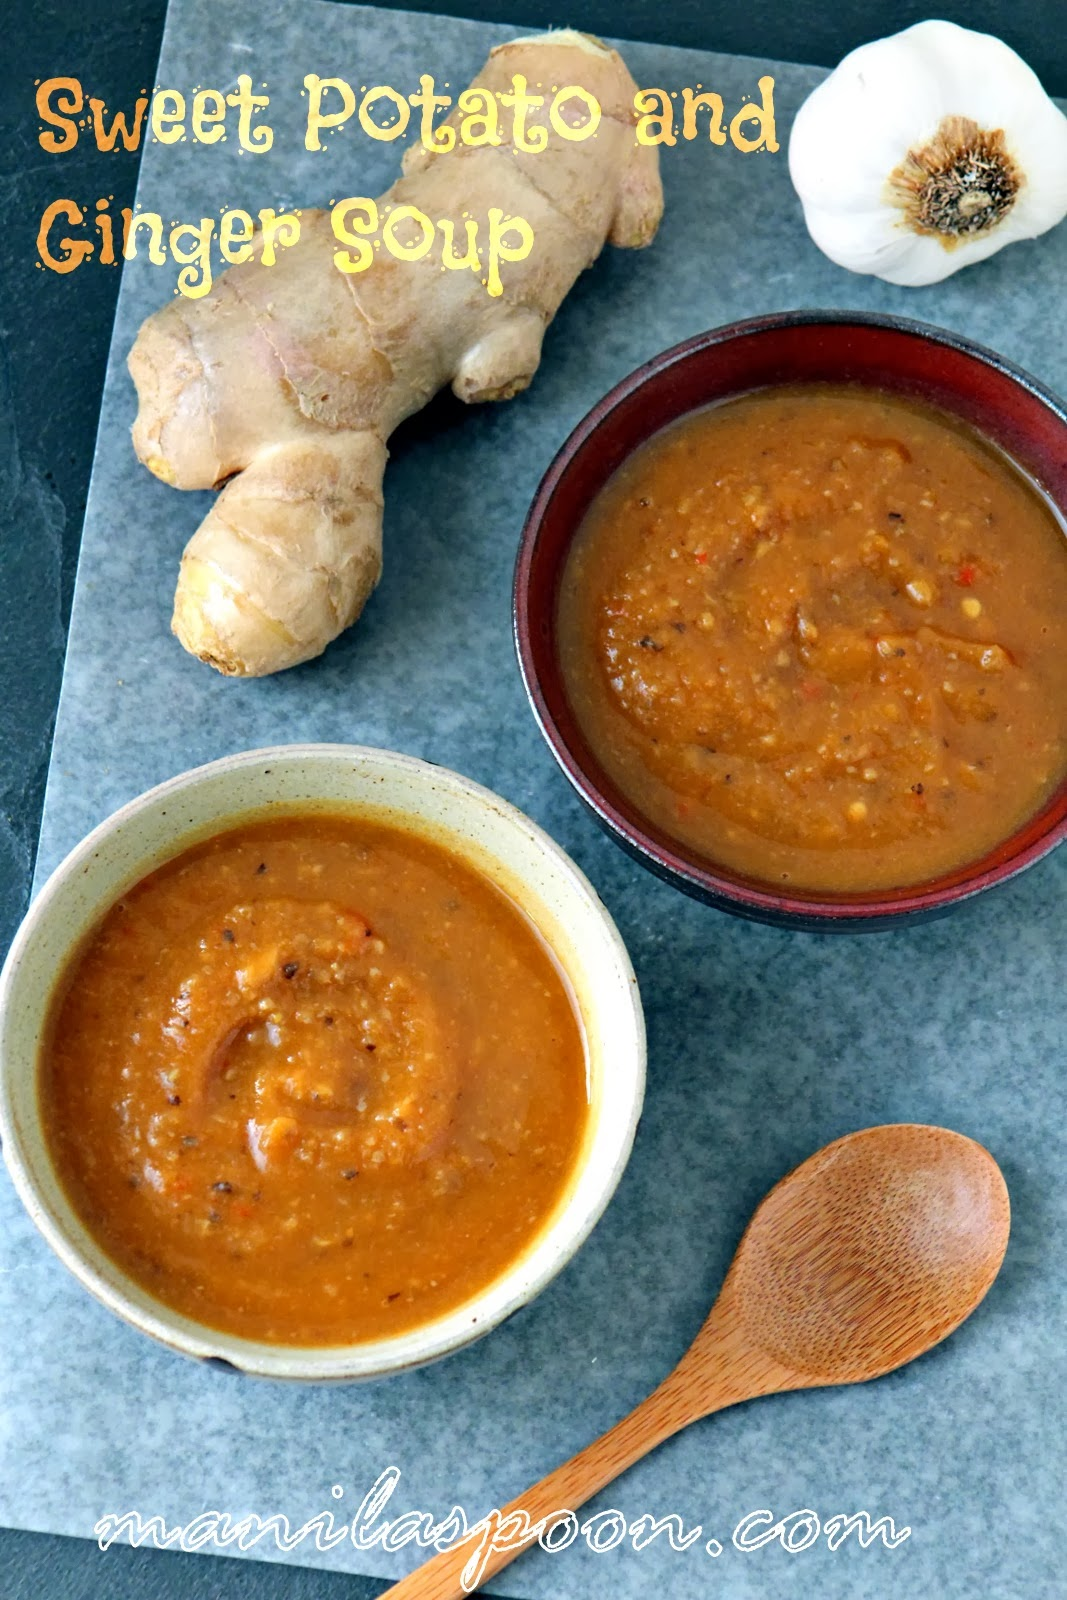 Sweet Potato and Ginger Soup (Yummy Recipe to help cure the Flu)